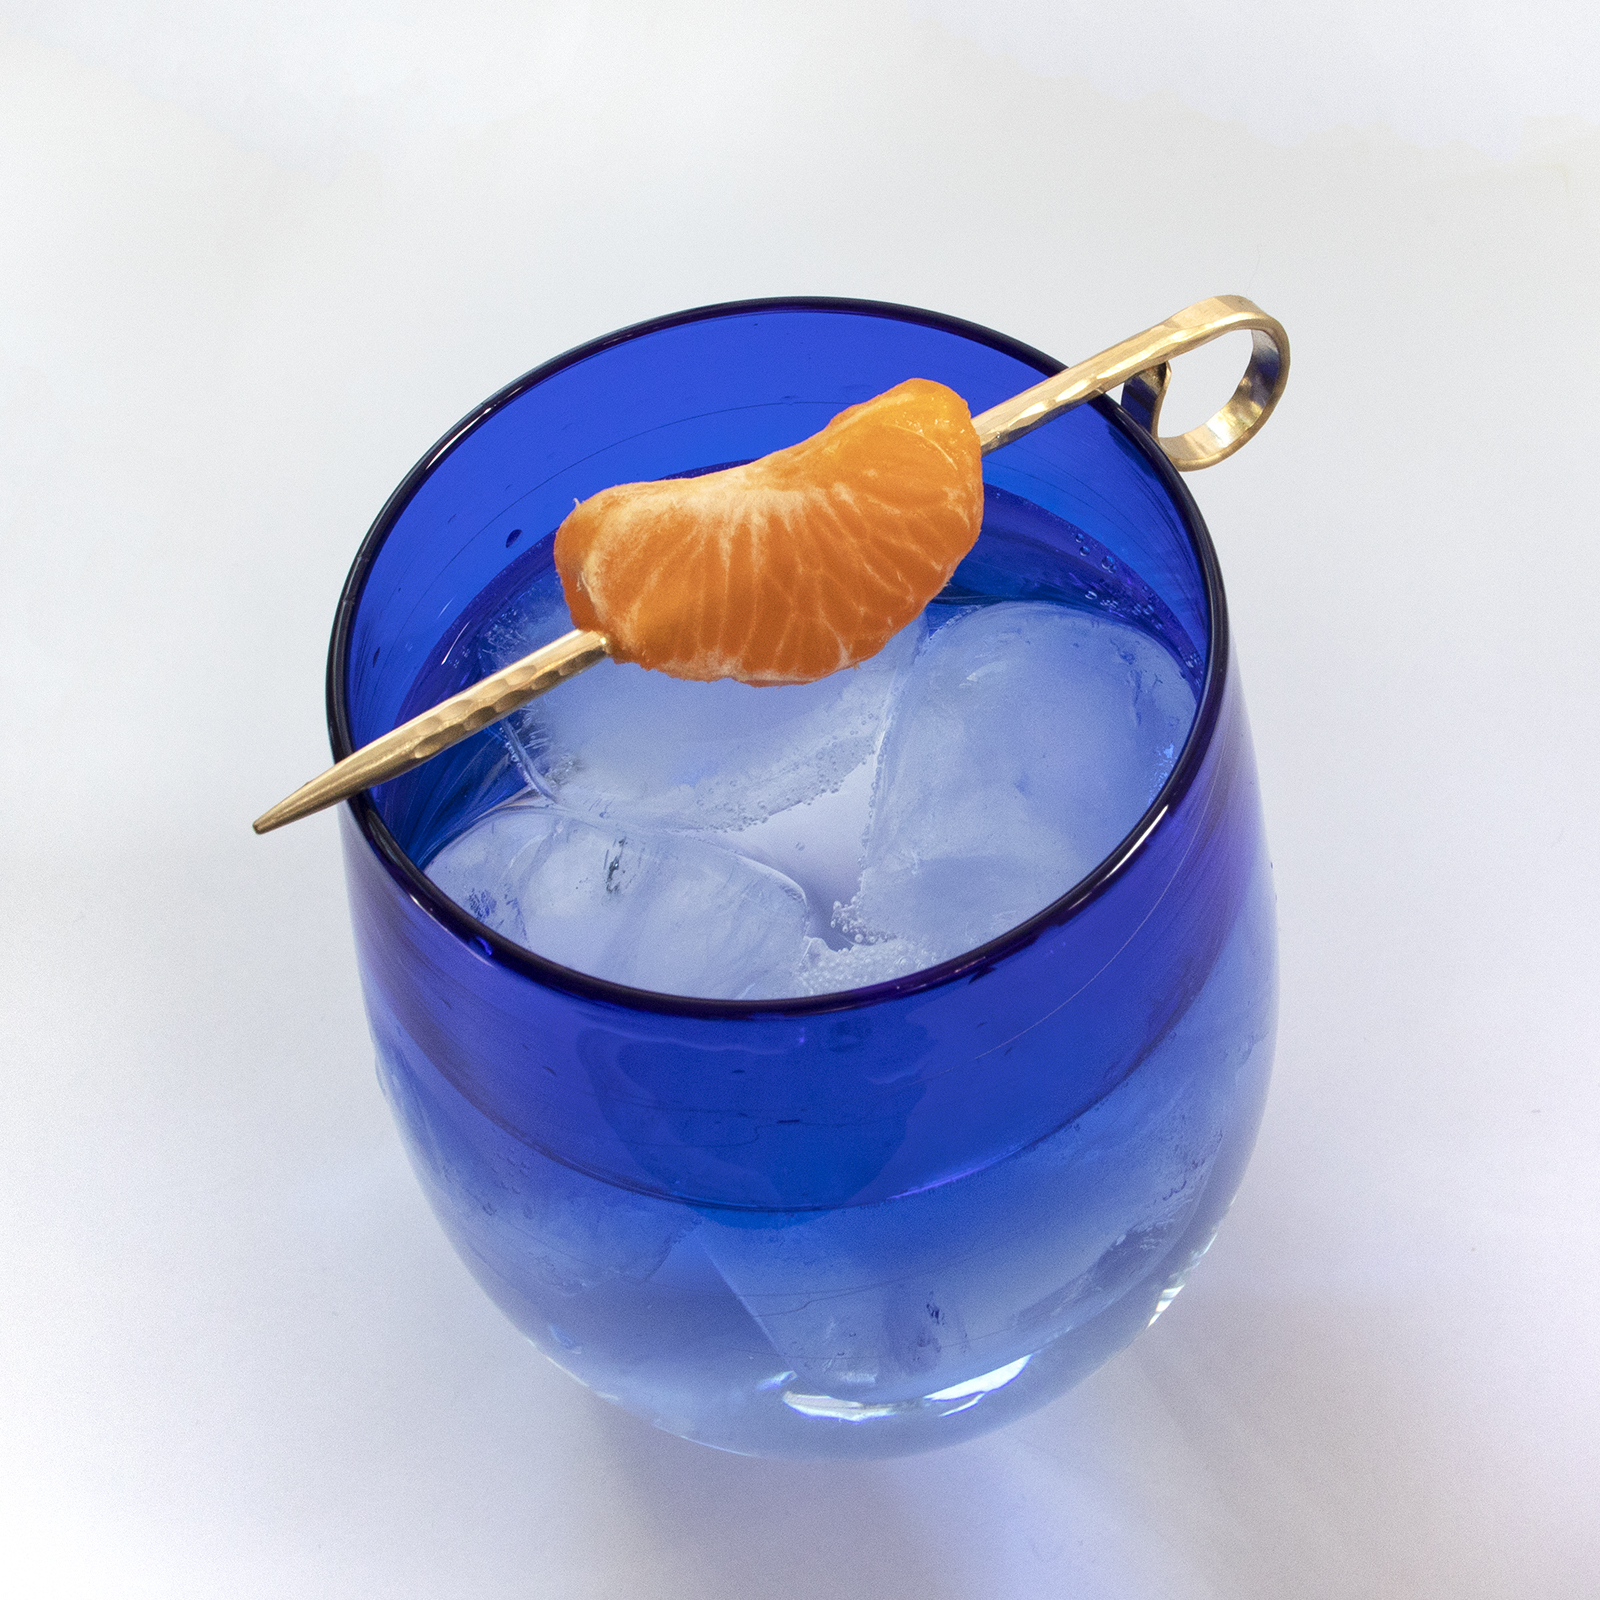 Brass cocktail pick in blue glass - clem